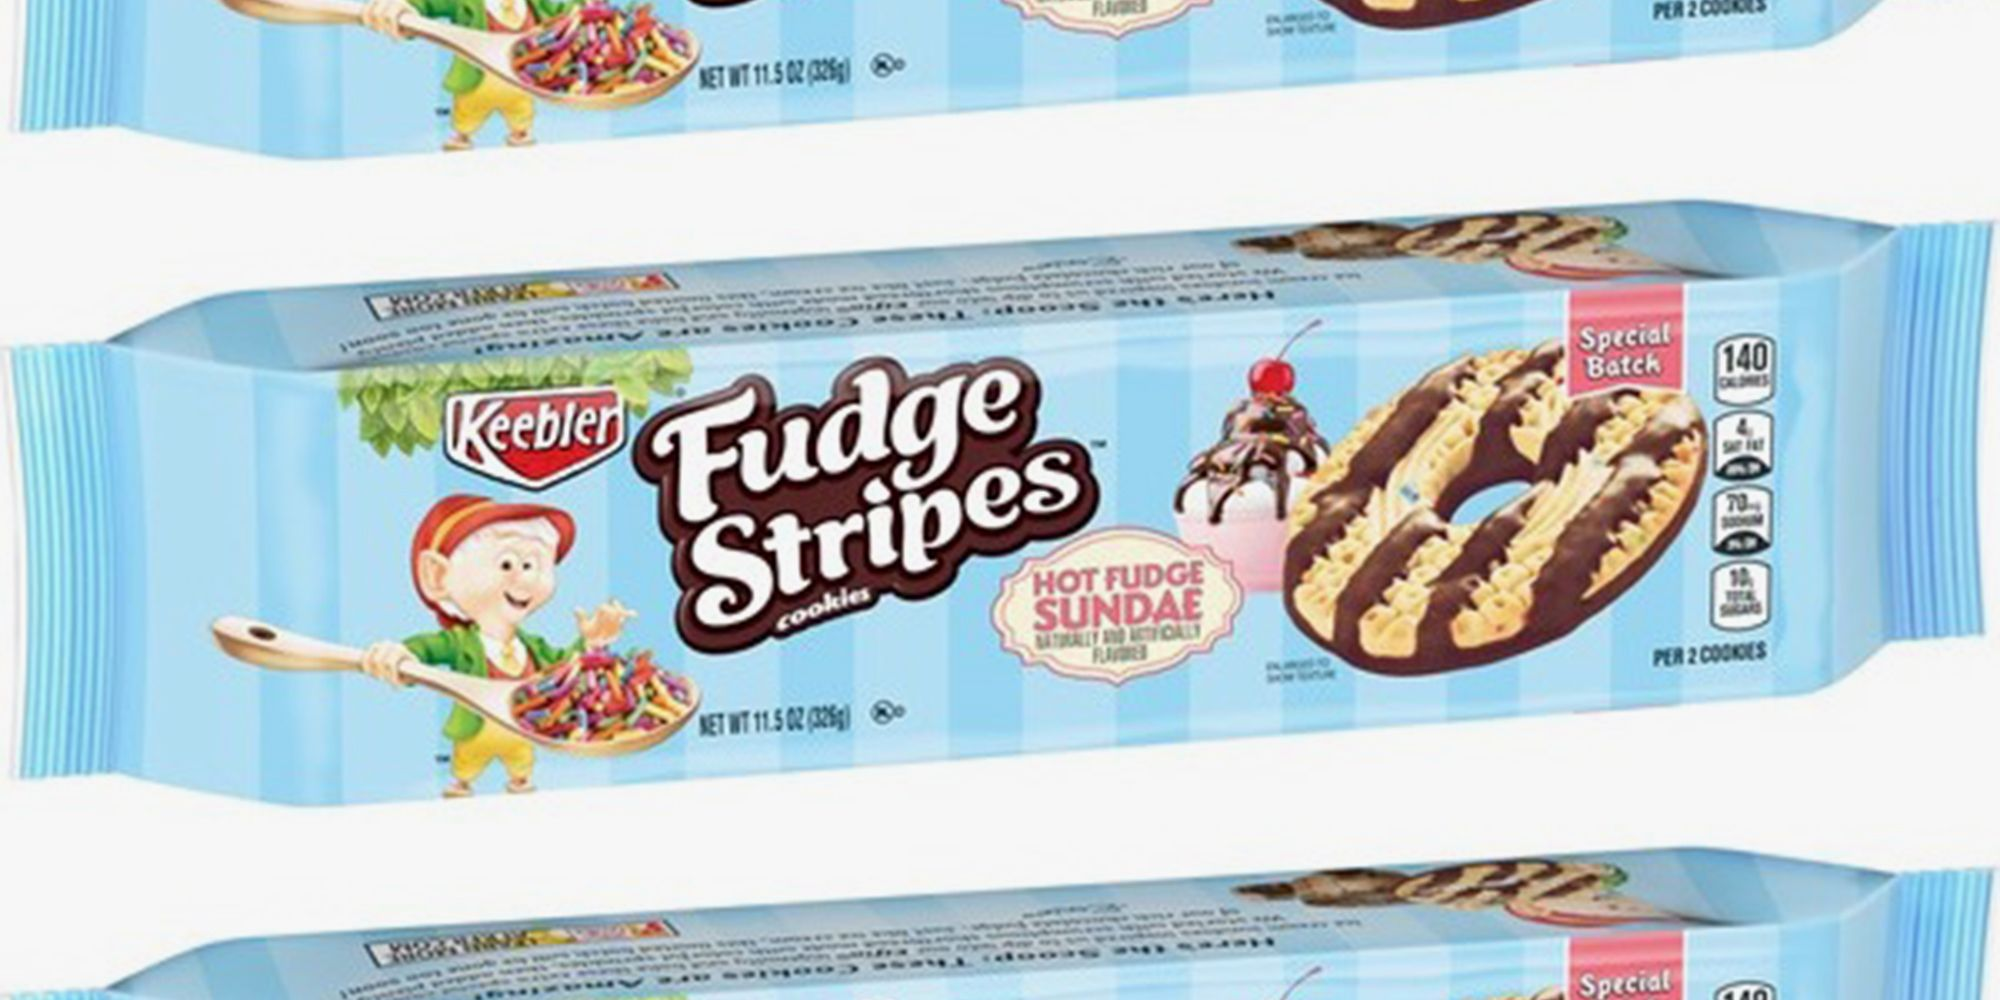 Keebler's New Fudge Stripes Are Like A Hot Fudge Sundae In A Cookie